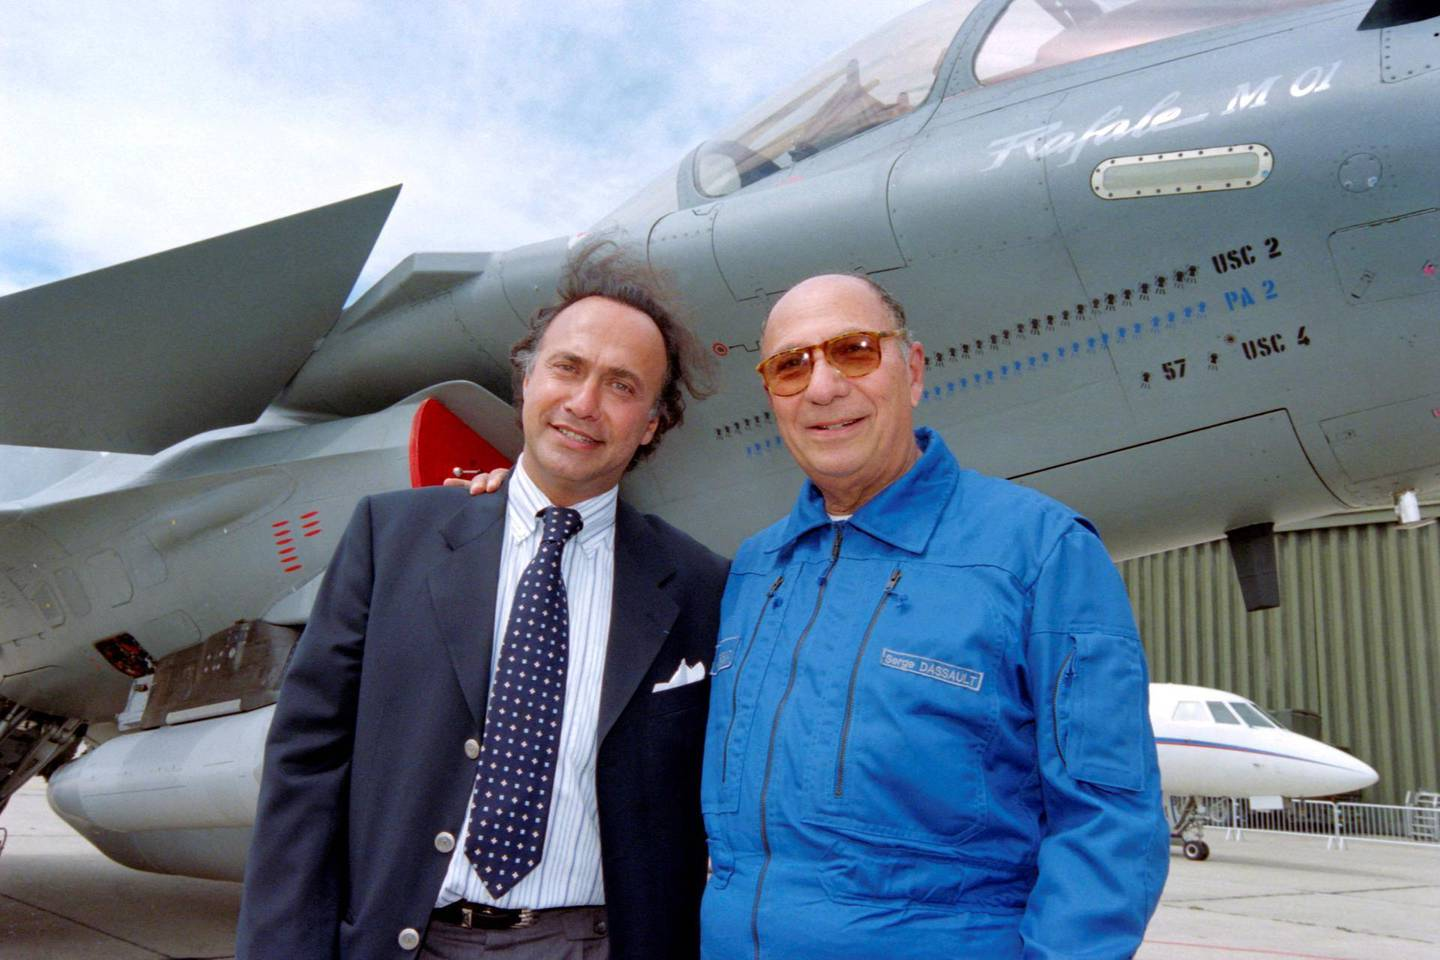 (FILES) In this file photo taken on June 11, 1997 Serge Dassault (R), Dassault Group CEO, poses with his son Olivier Dassault in front of a Rafale M01 jet fighter in Le Bourget, near Paris.  Olivier Dassault has died in the crash of his helicopter near Deauville, a parlamentiary source said on March 7, 2021. / AFP / Jack GUEZ